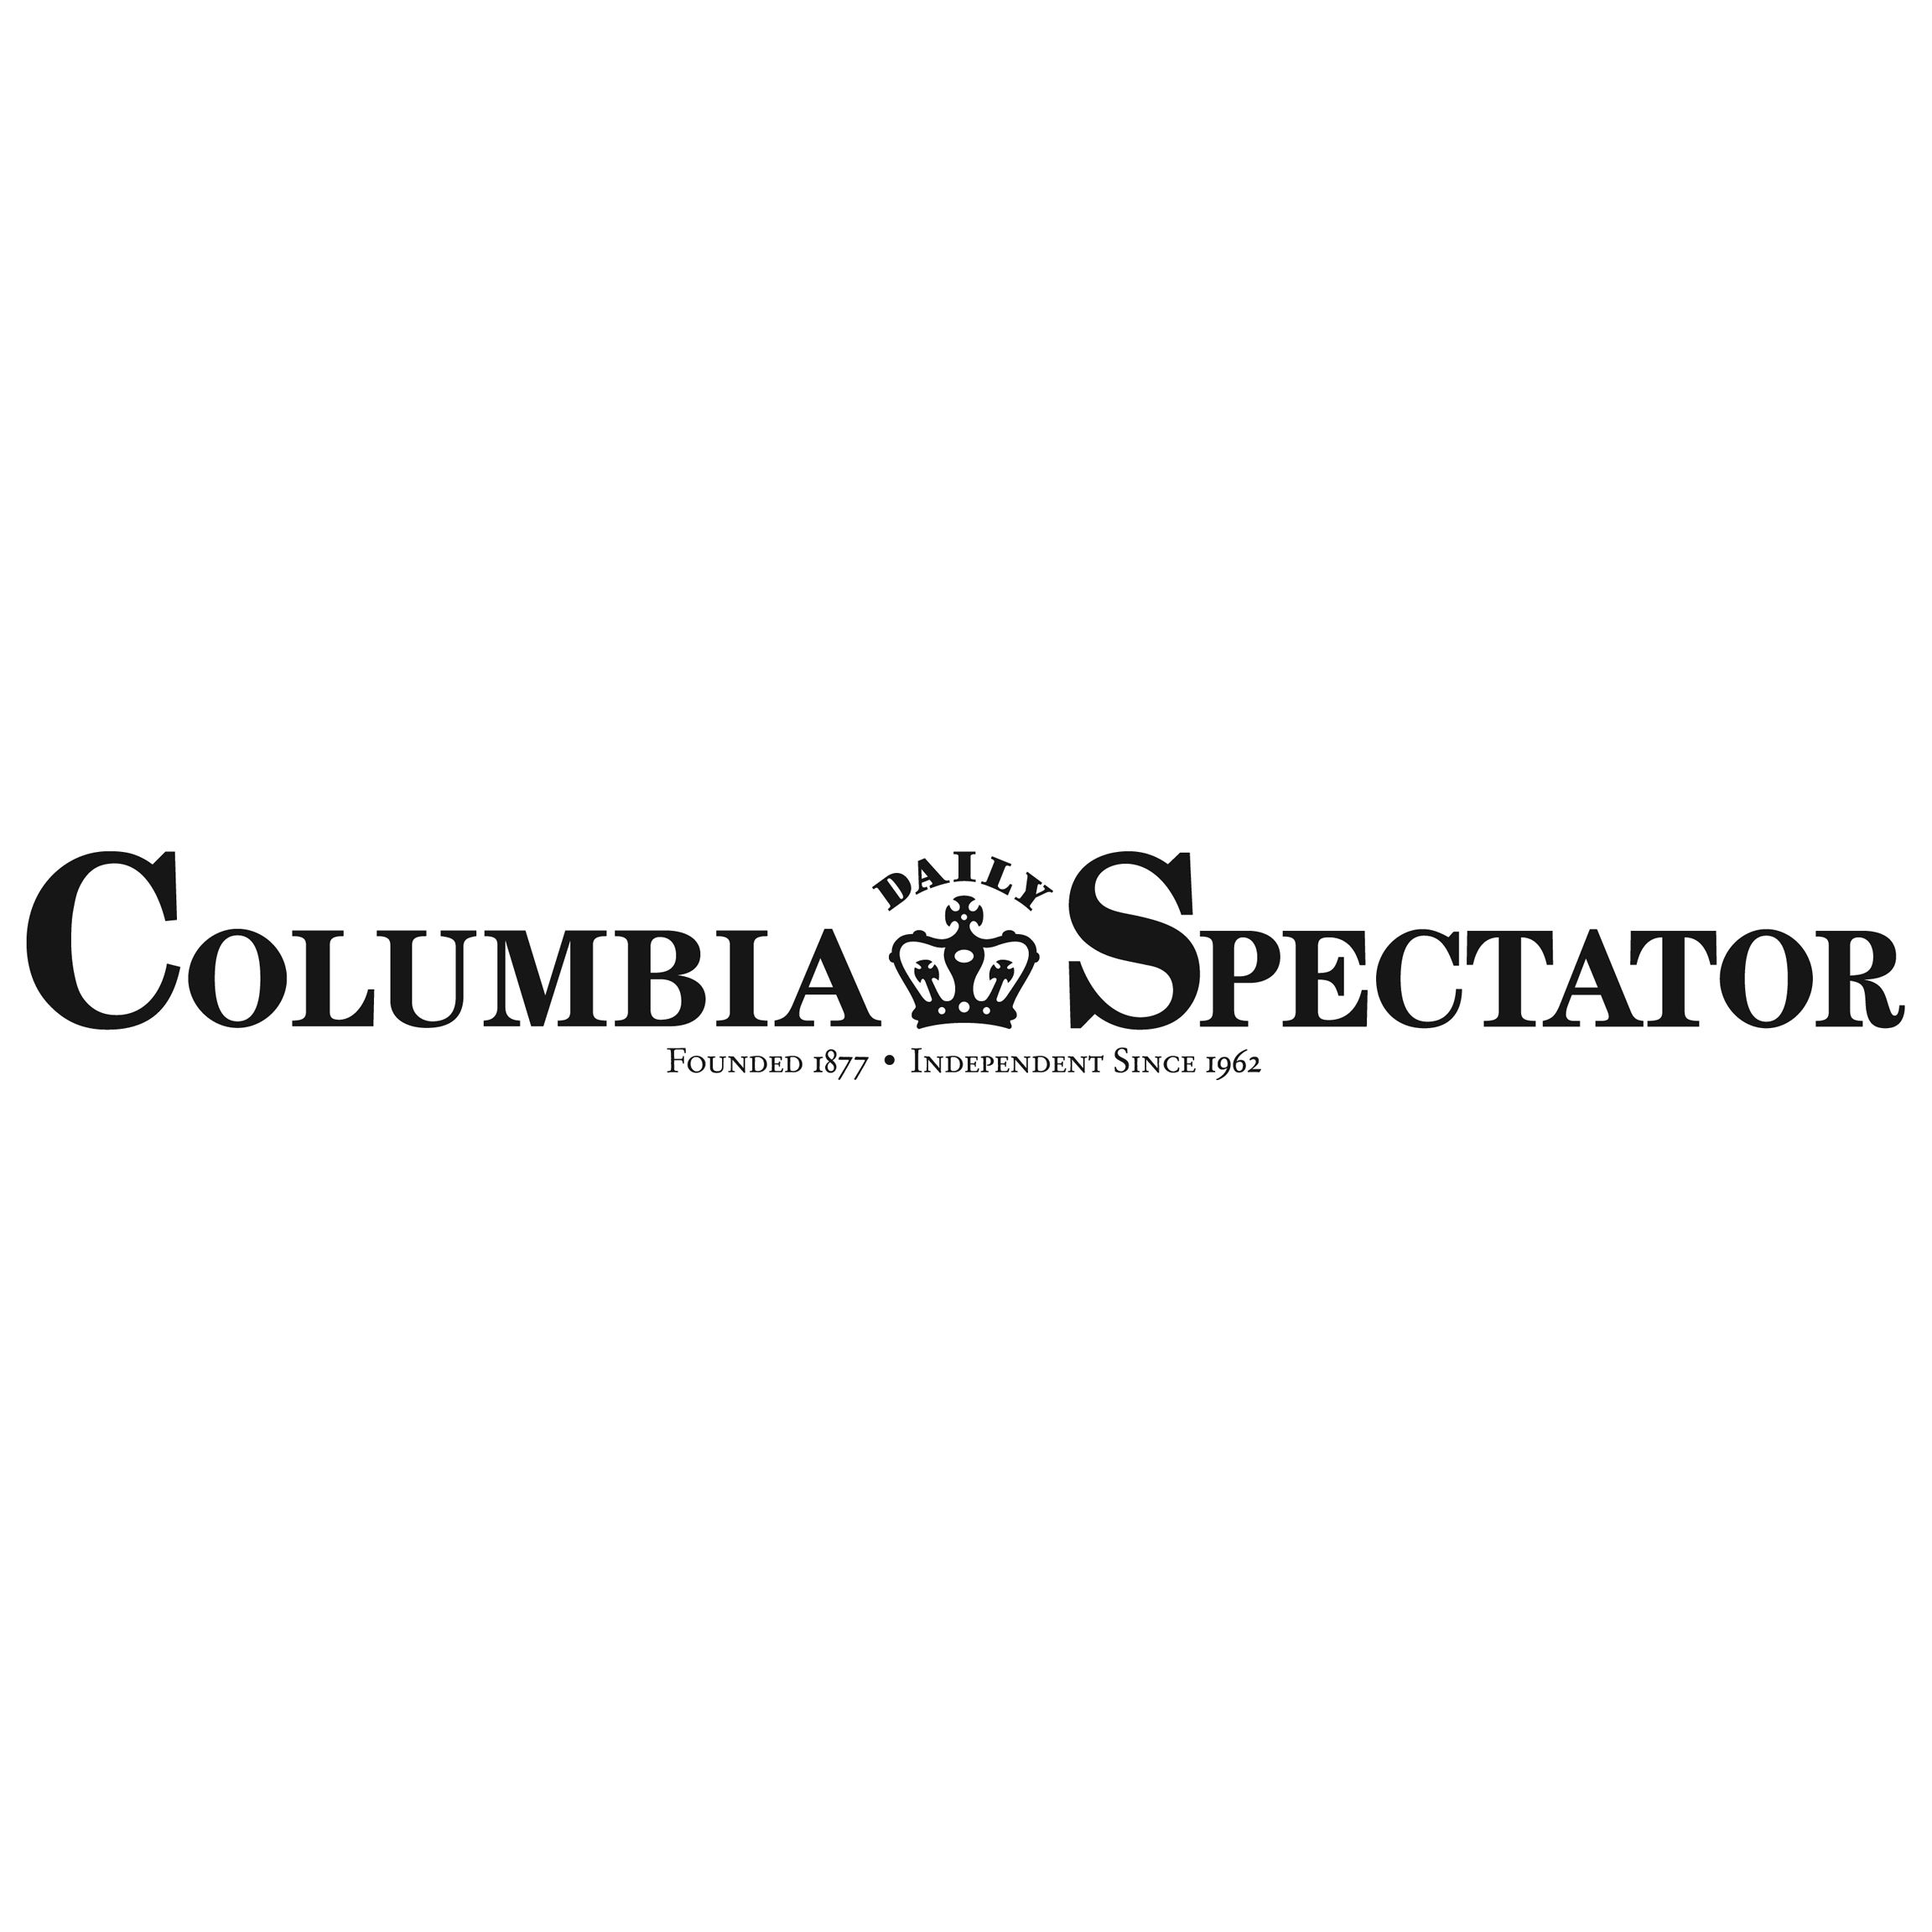 """Columbia Spectator   Barnard and NYU fashion brand PussyWeed hits campus  """"we support women in the rise of the legal cannabis industry given its male dominated nature"""""""